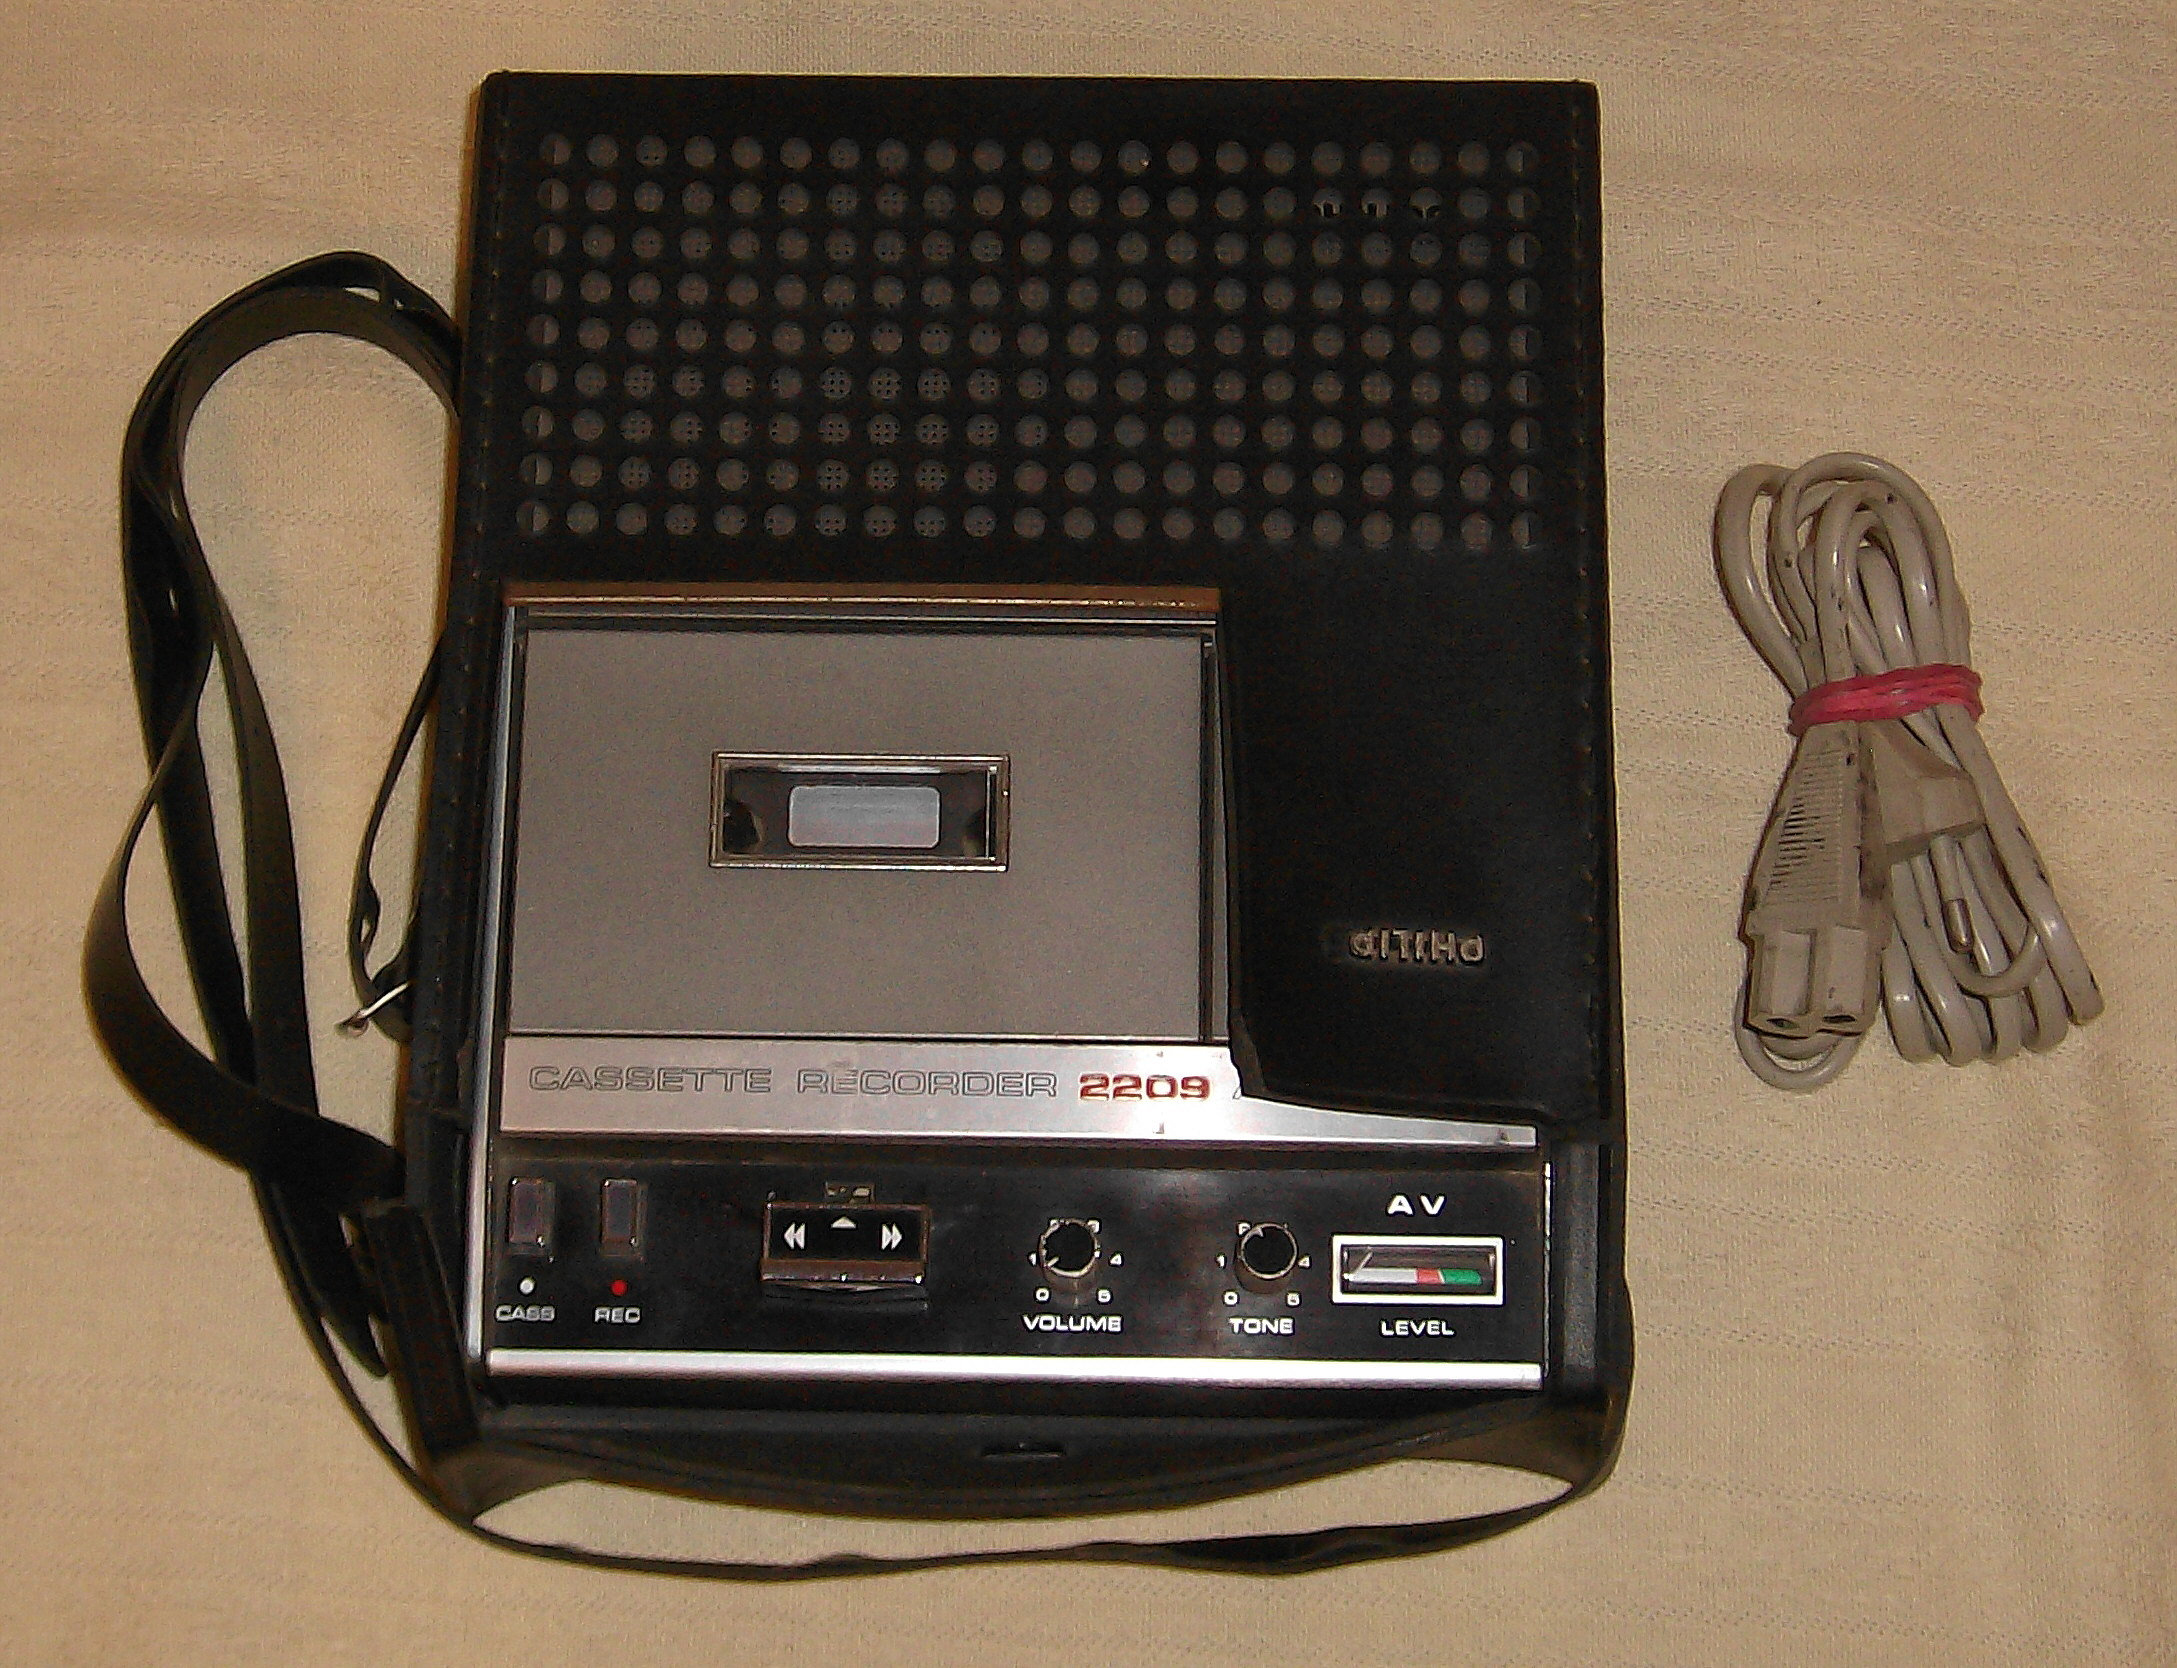 File:Philips 2209 automatic 3.jpg